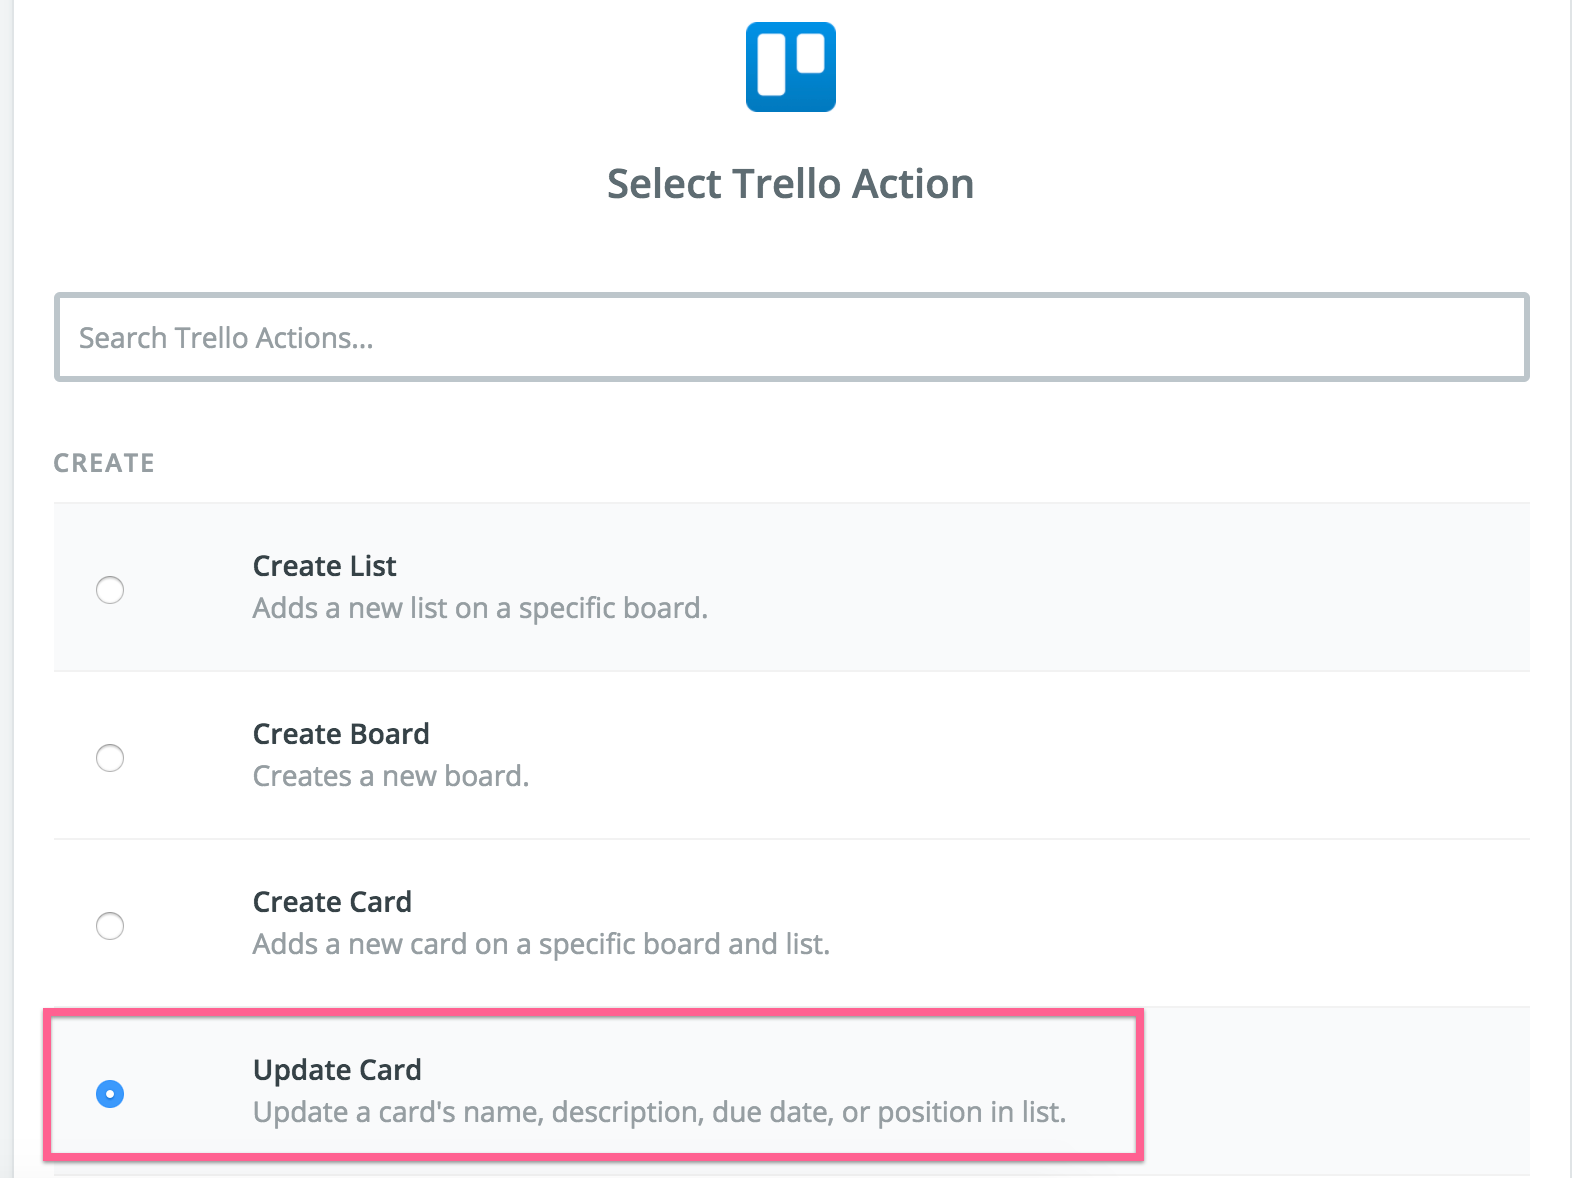 Trello Update Card selection Screenshot